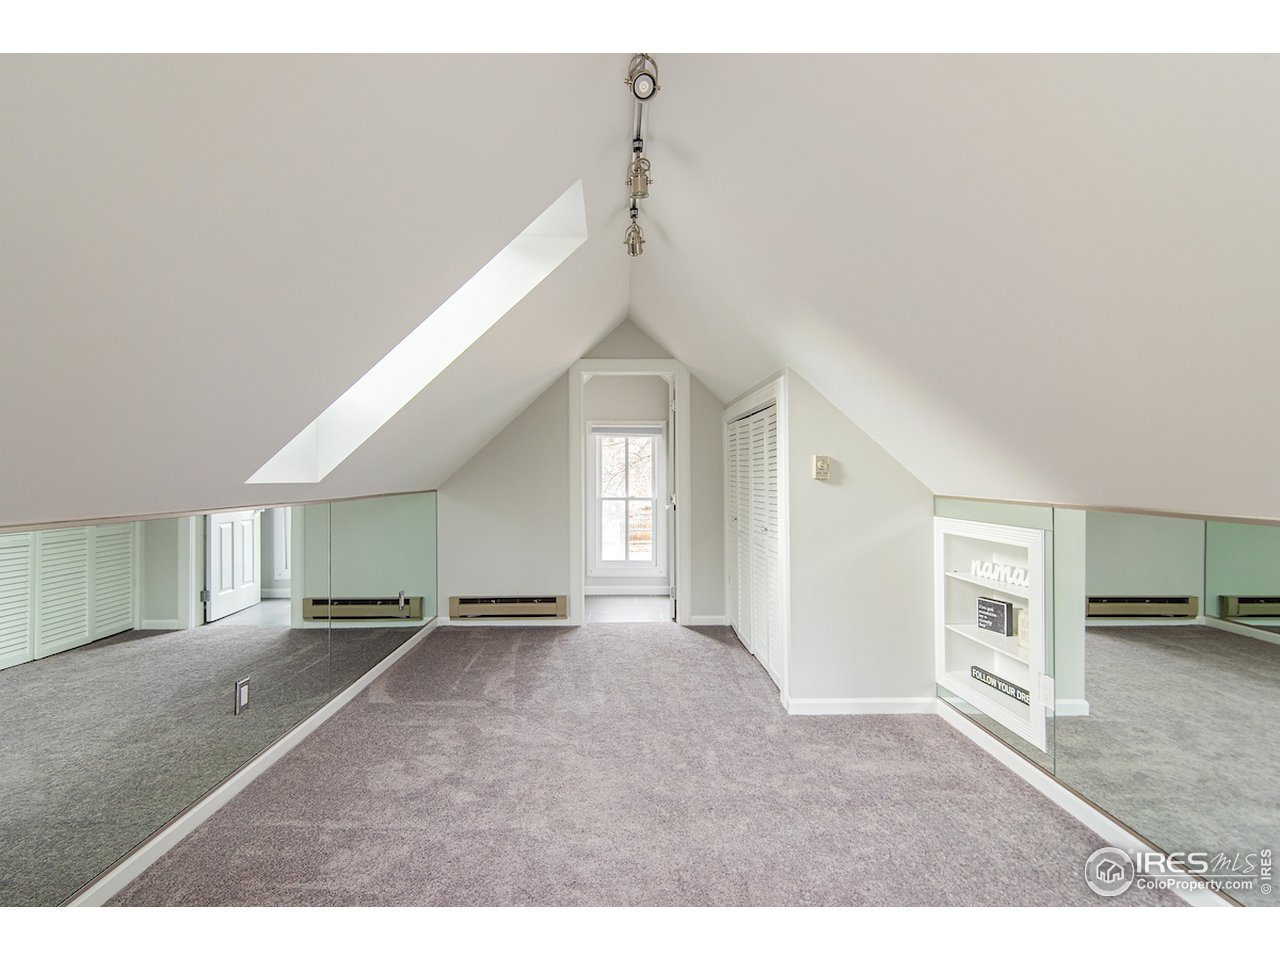 Studio space above garage - great for exercise/yoga or just a quiet retreat from everyone else!